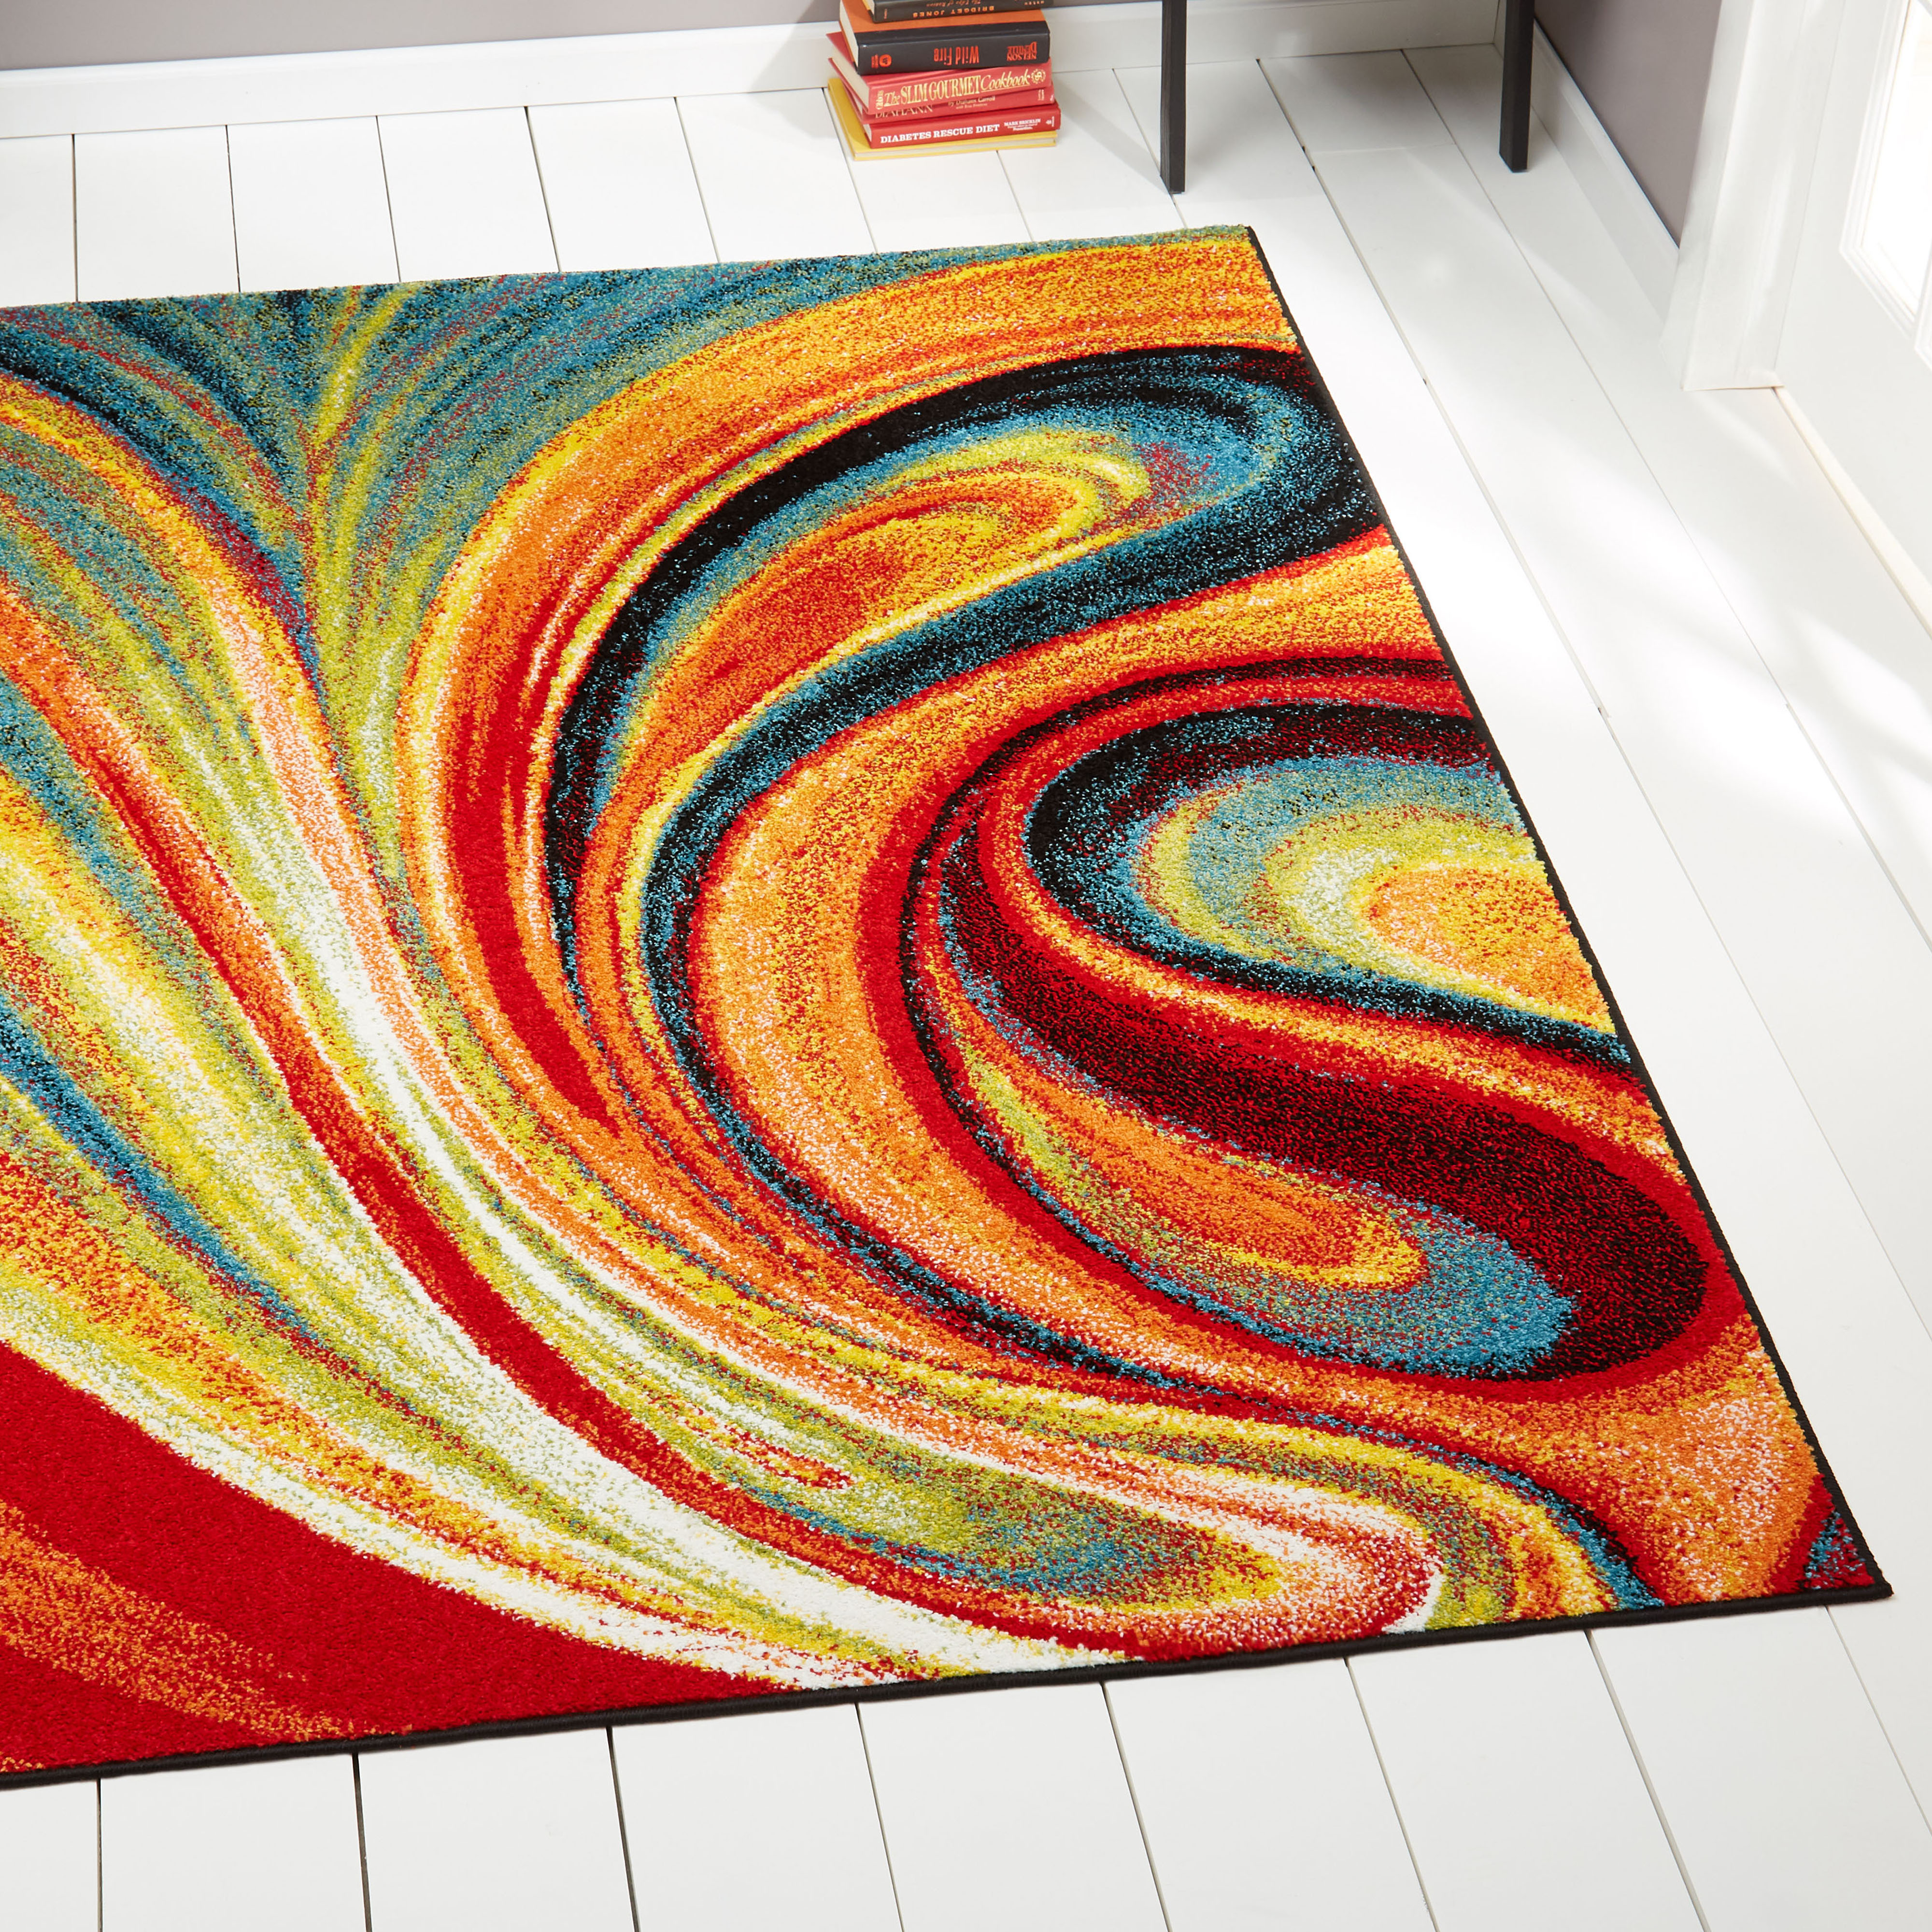 Home Dynamix Splash Collection Multi-Colored Contemporary Area Rug for Modern Home Decor